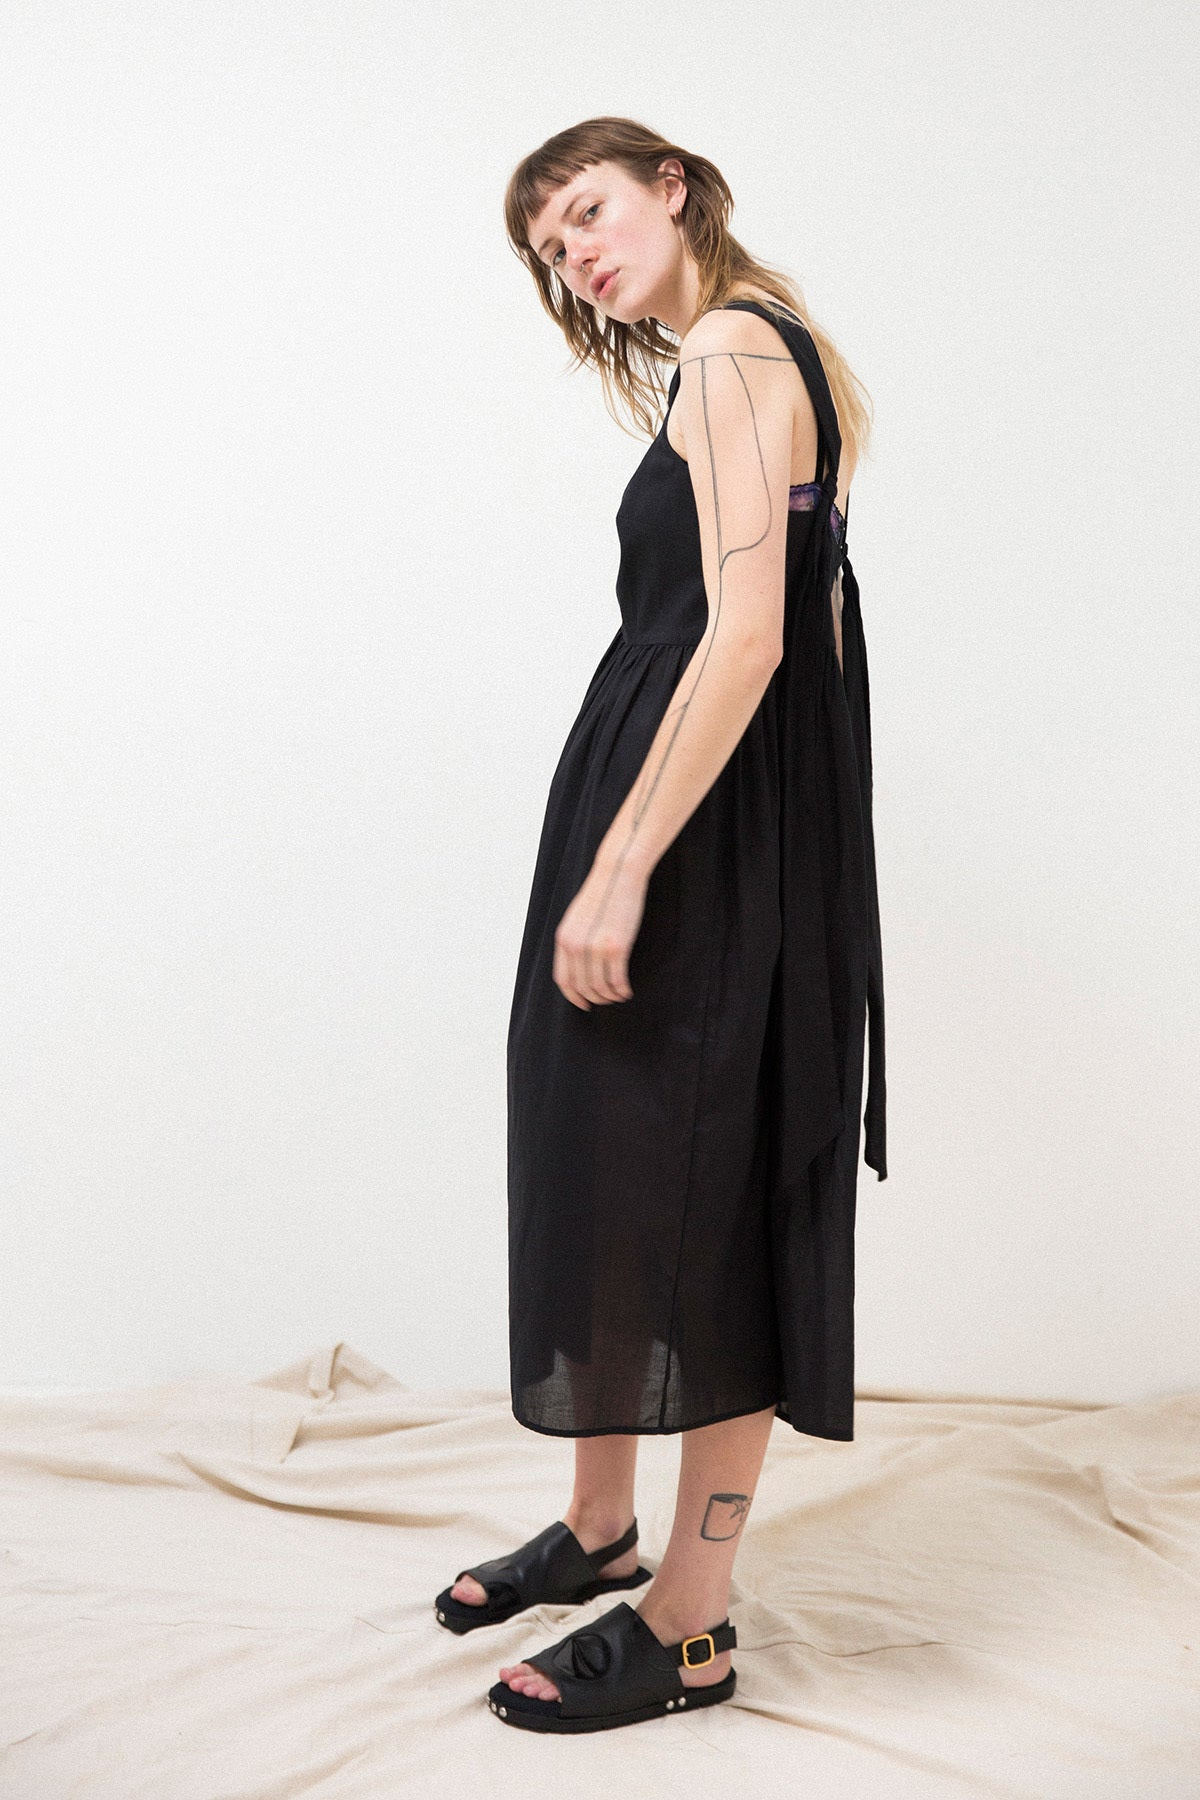 New Zealand Designer Clothing | Chain Dress Lonely Hearts Shop Now River Nz Designer Clothing